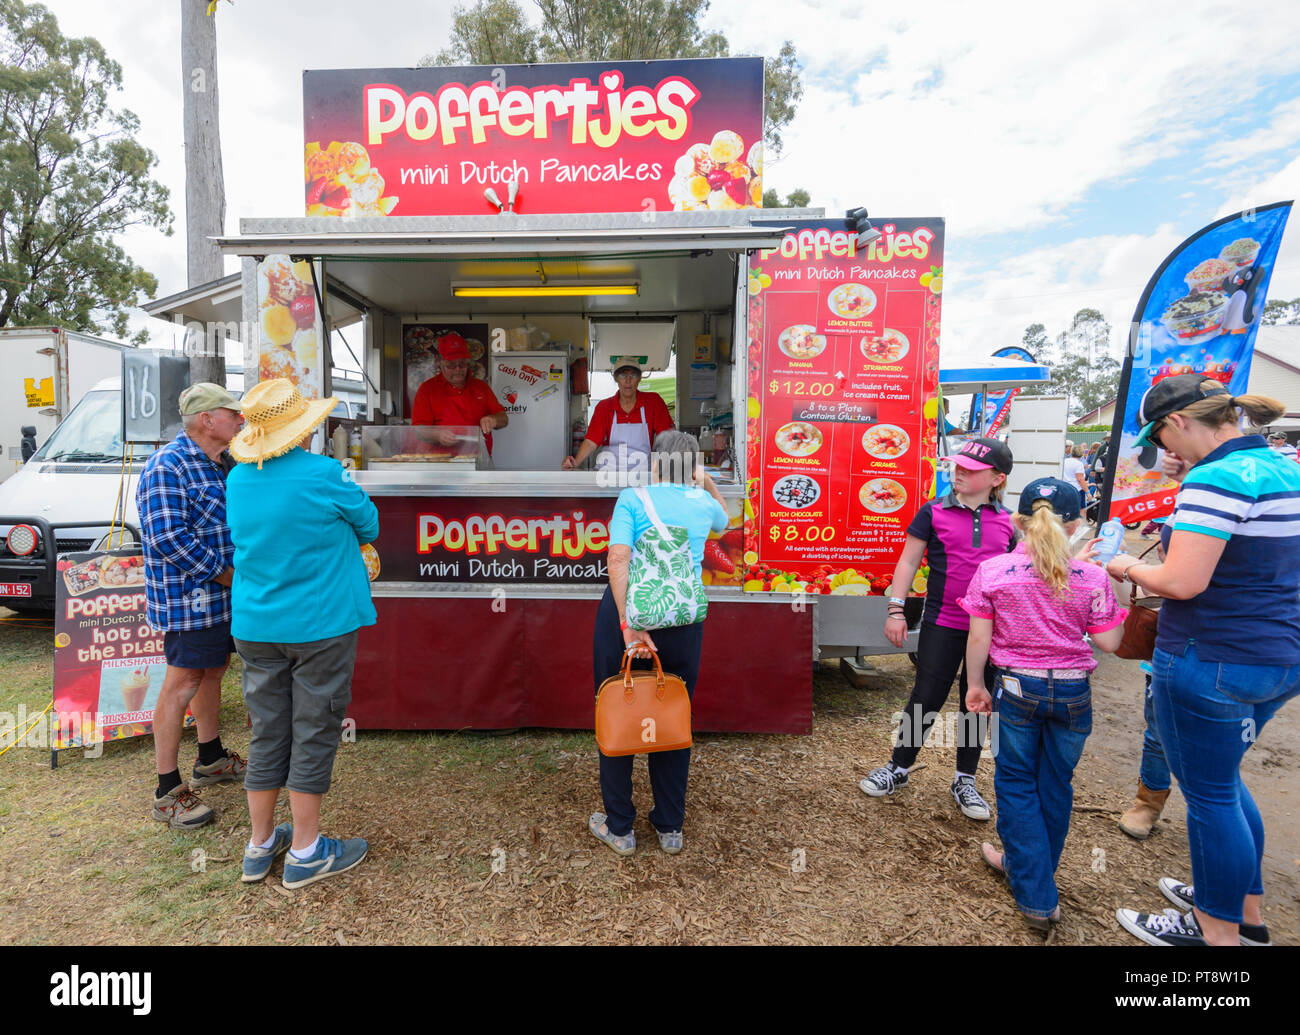 Food stall selling Poffertjes or Dutch pancakes, Australian Camp Oven Festival 2018, Millmerran, Southern Queensland, QLD, Australia Stock Photo